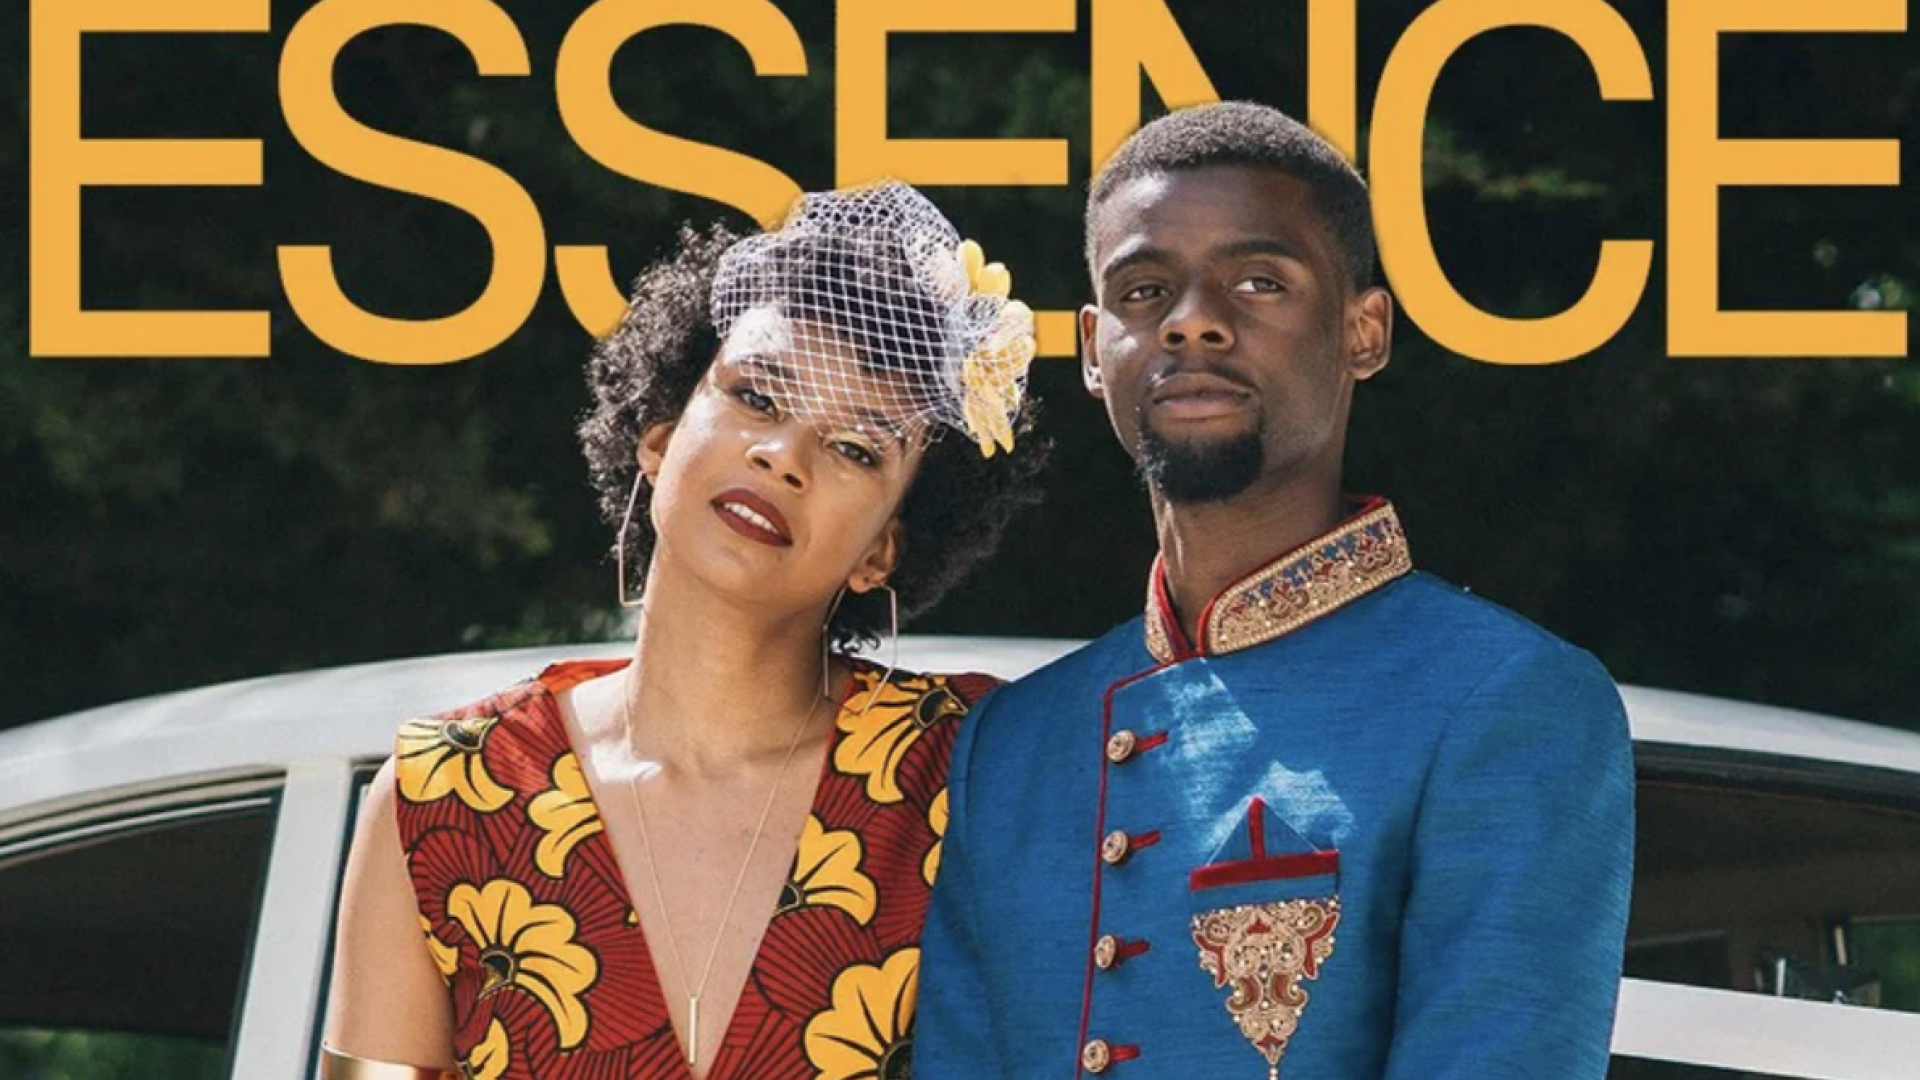 These Couples Absolutely Crushed The ESSENCE Challenge